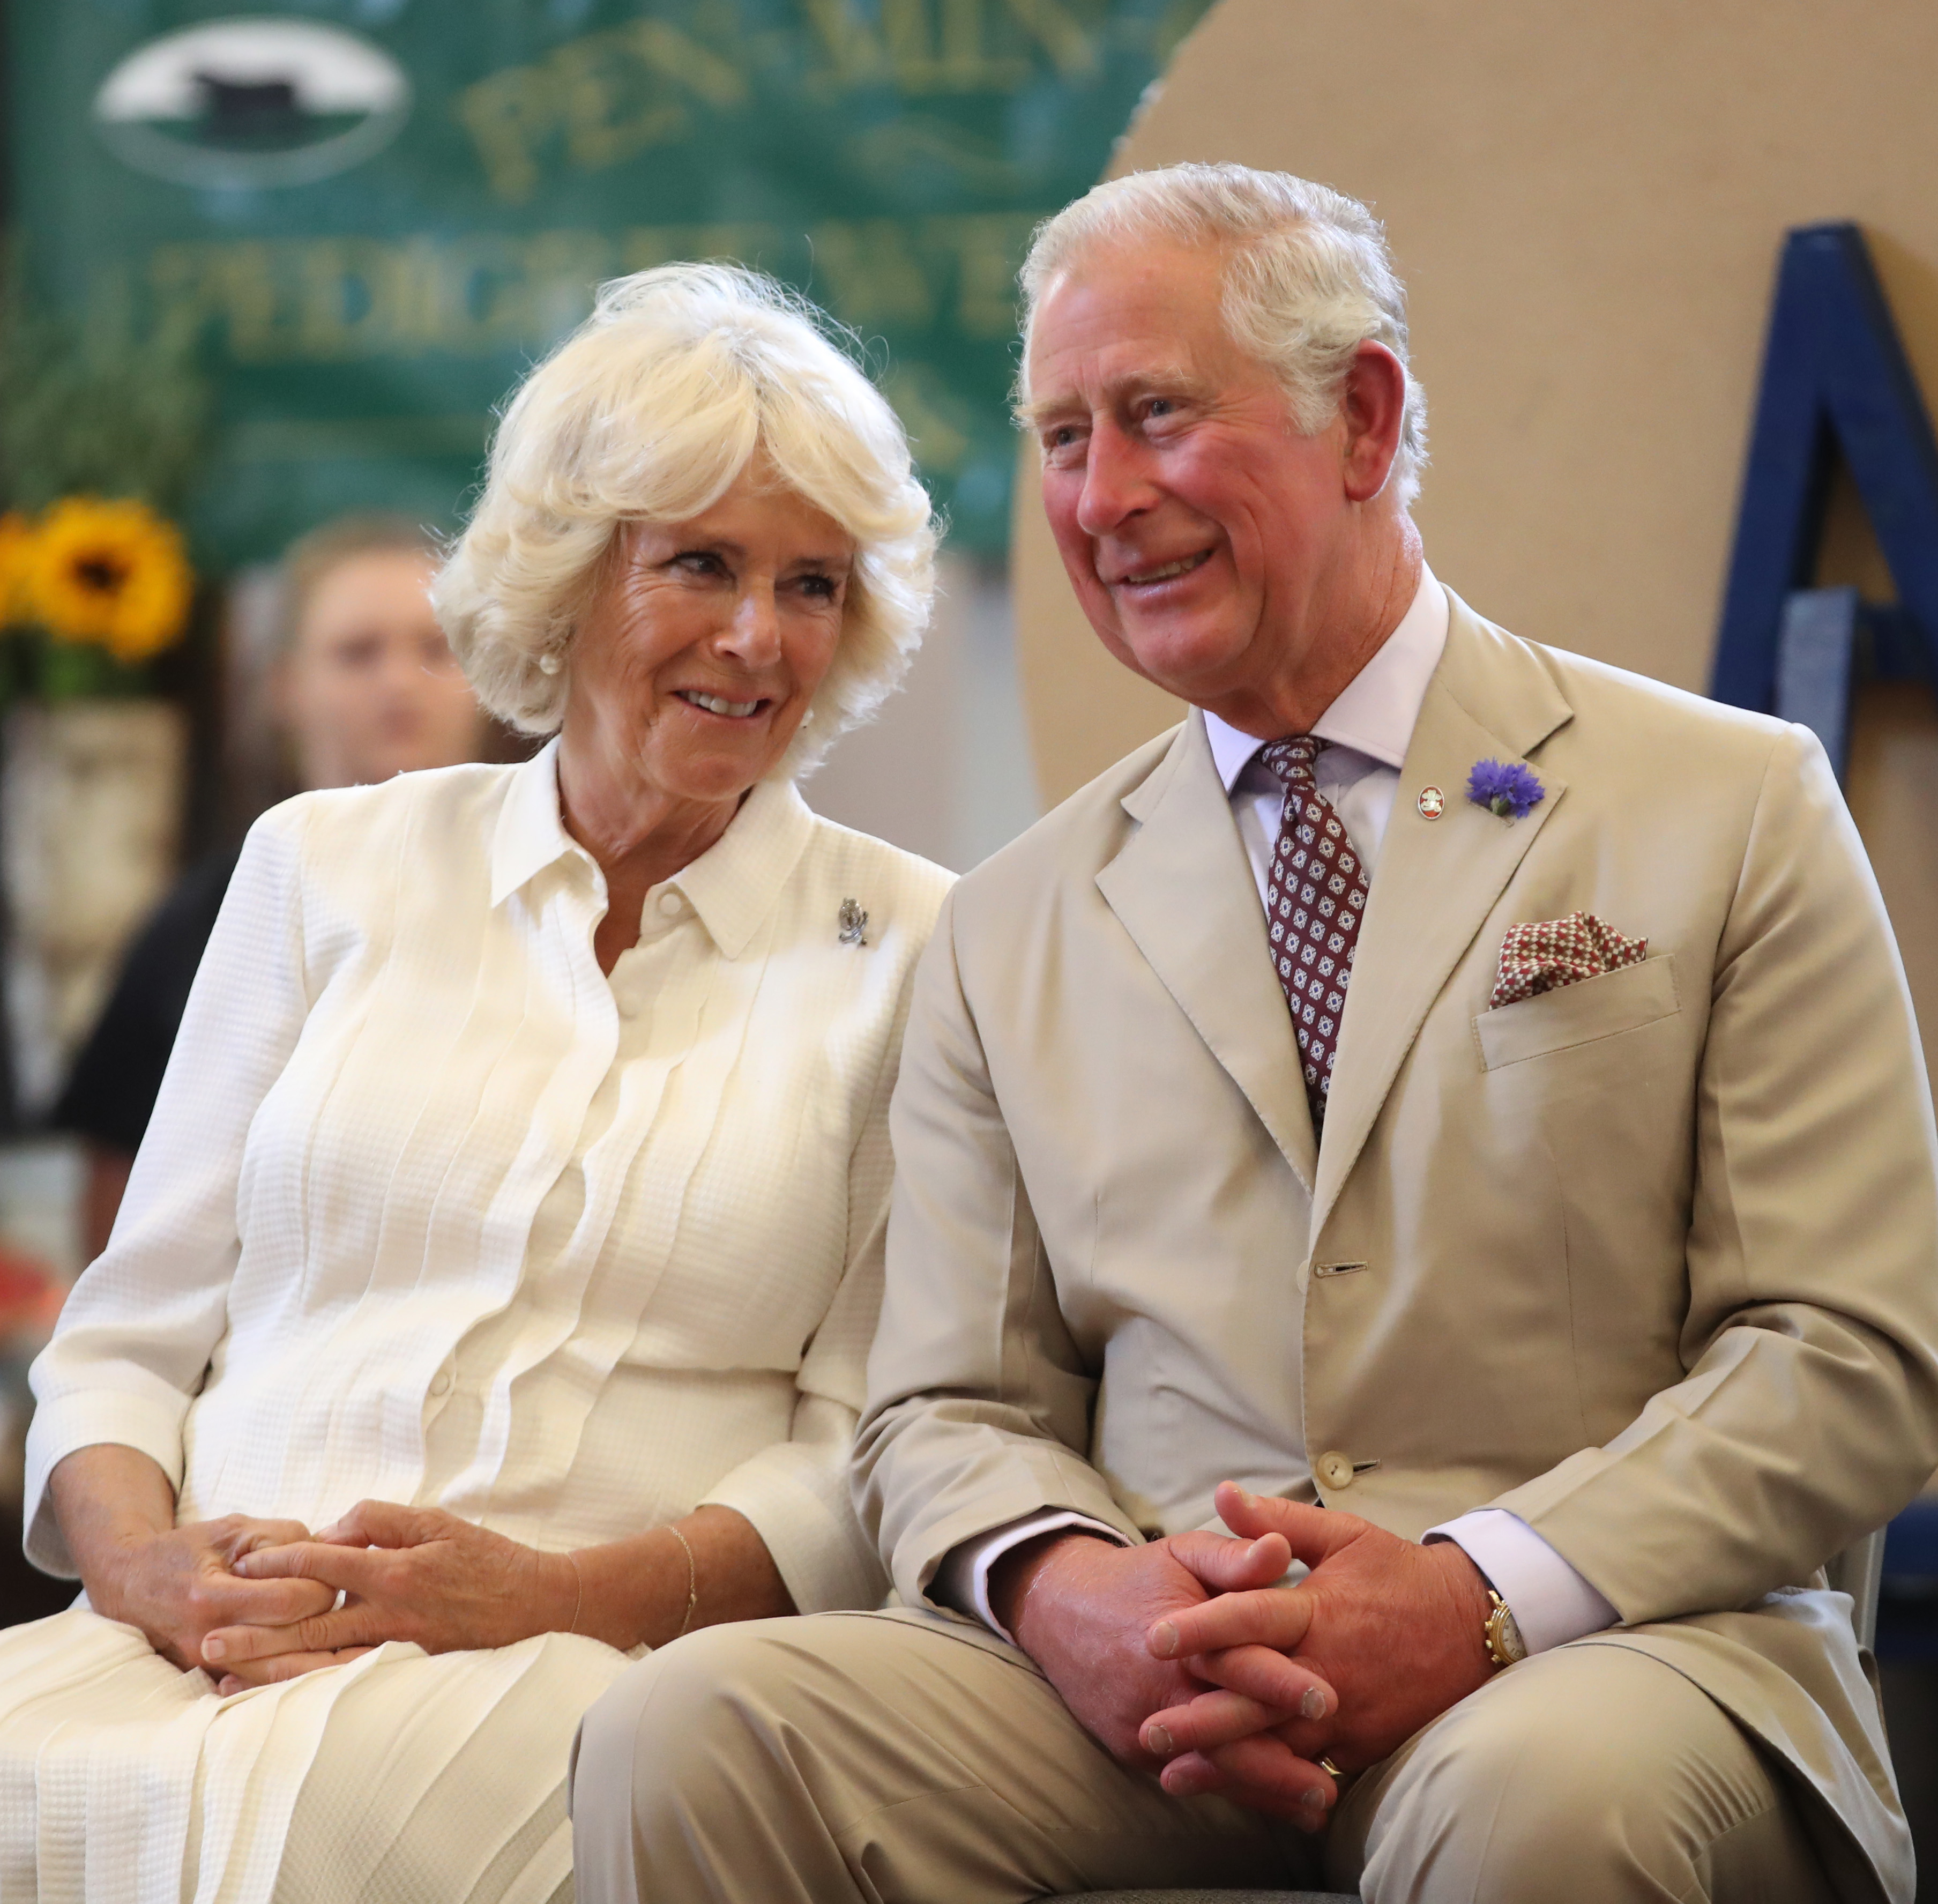 Prince Charles, Prince of Wales and Camilla, Duchess of Cornwall reopen the newly-renovated Edwardian community hall The Strand Hall during day three of a visit to Wales on July 4, 2018 in Builth Wells, Wales.